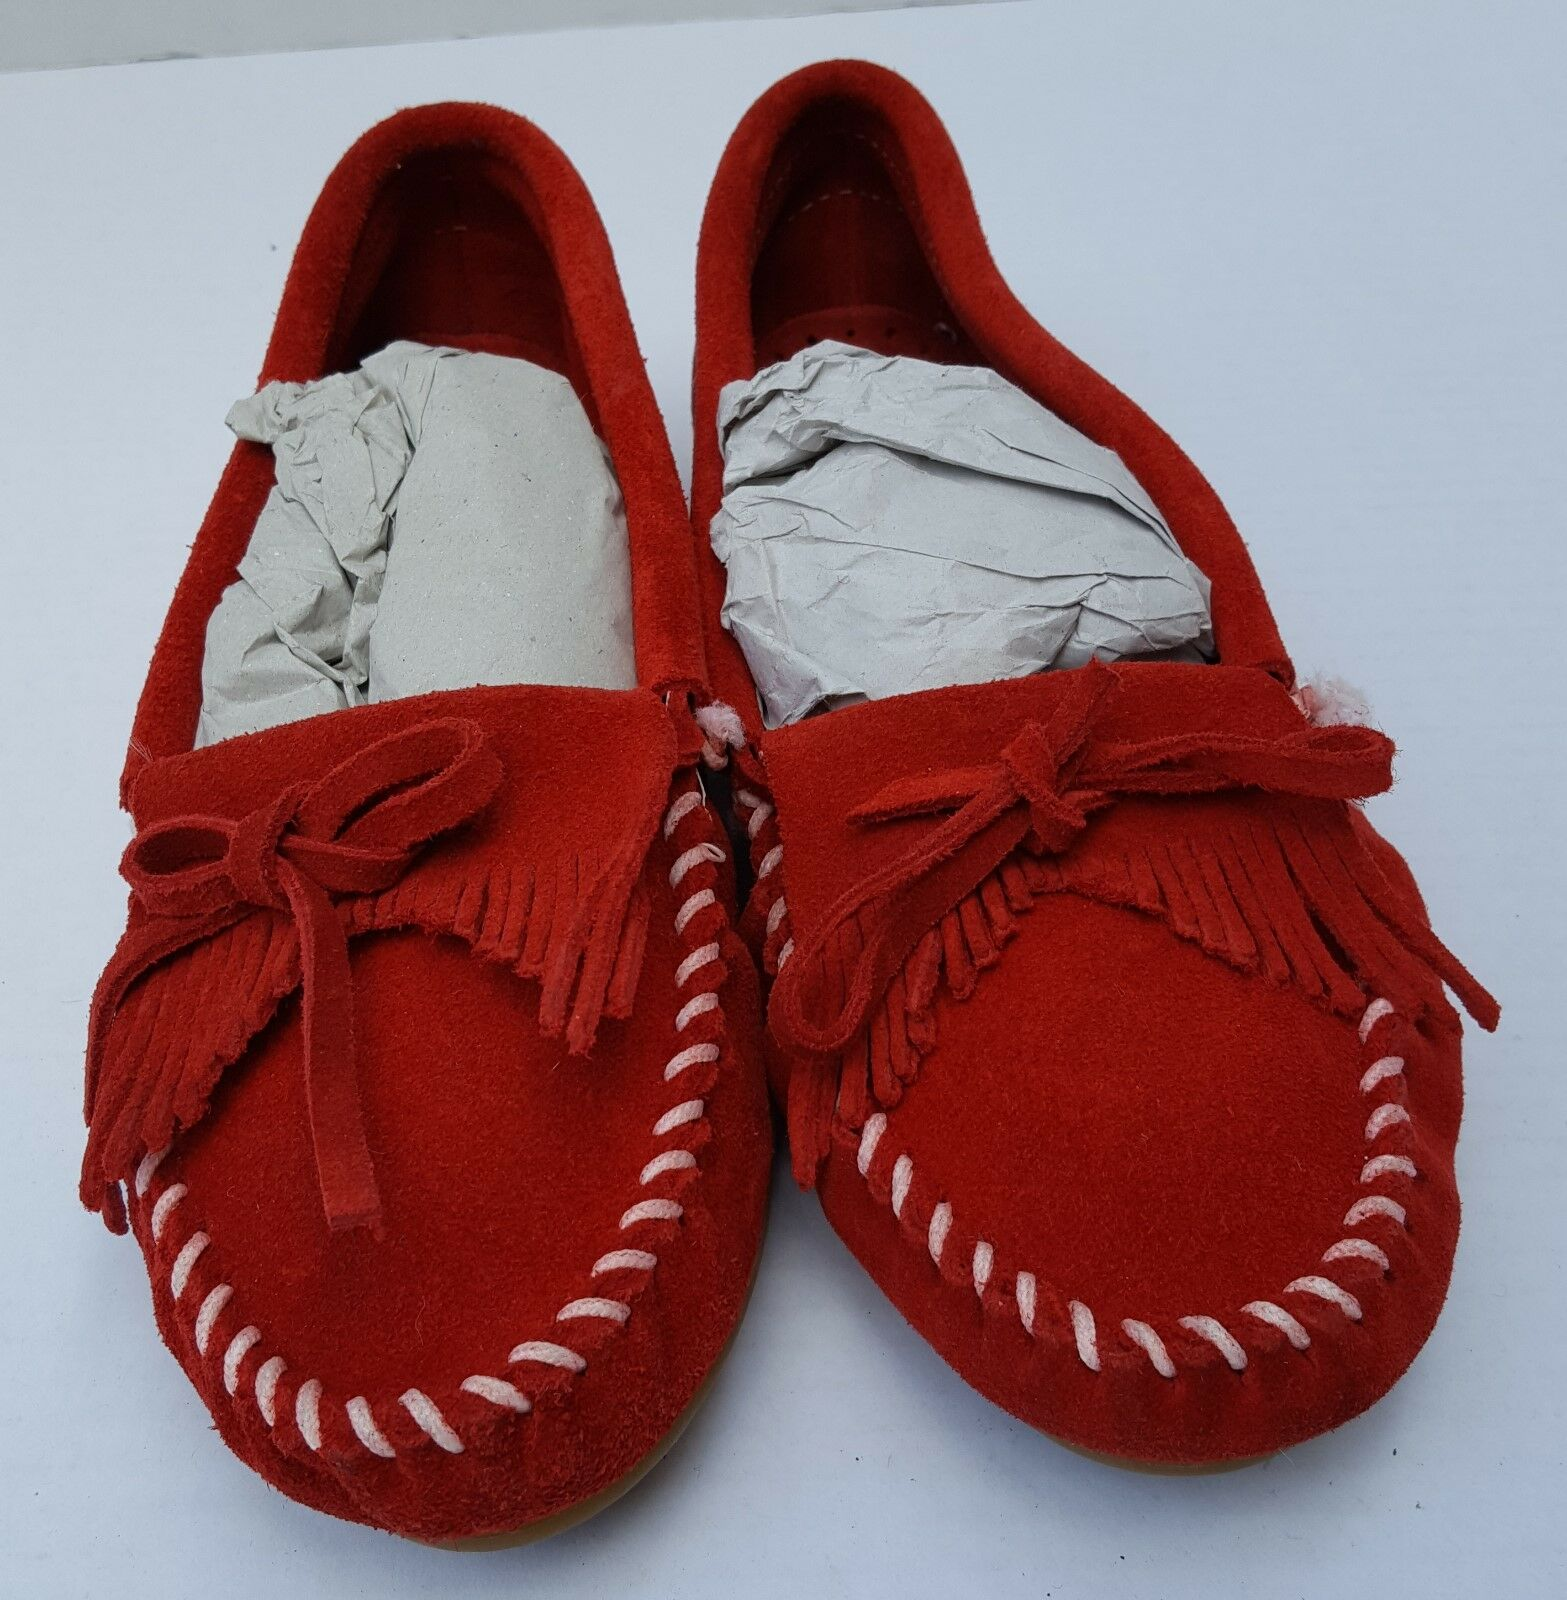 New Damenschuhe Minnetanka ROT Kilty Stitch Christmas Moccasin Loafers Schuhes 8.5